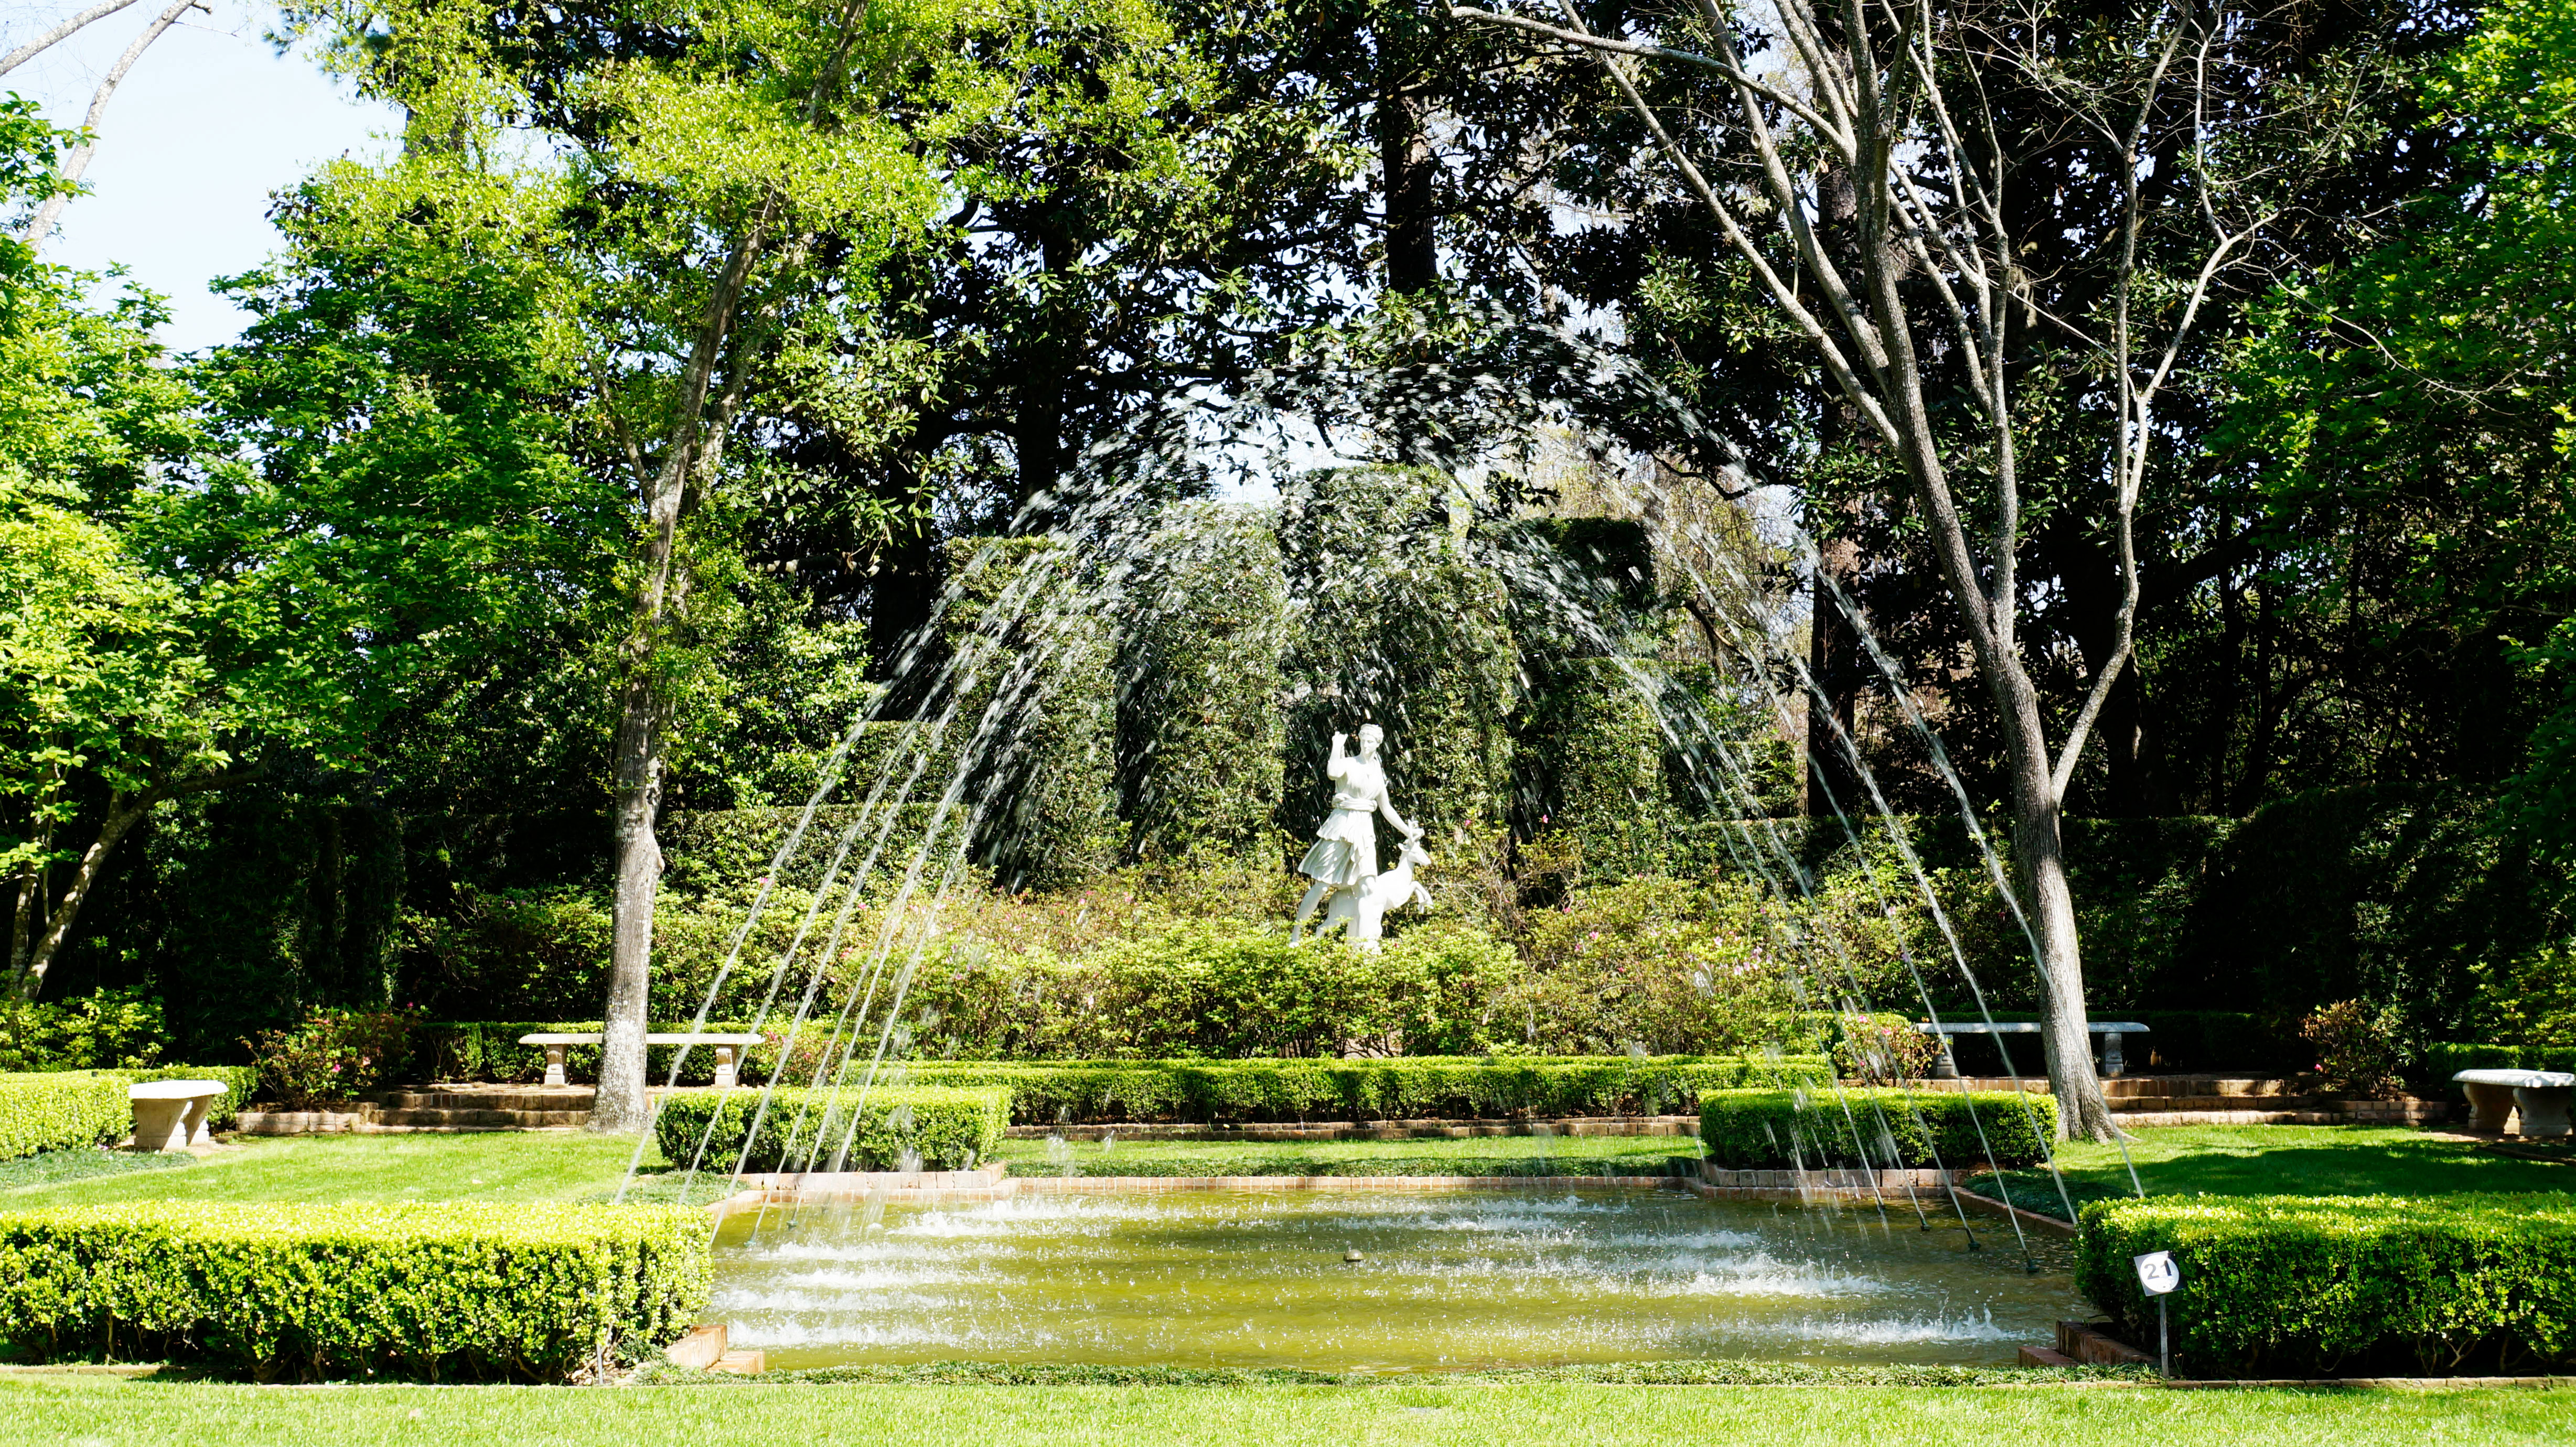 The Diana Garden Was The First To Statue Acquired For The Gardens. The  Focal Point Is Diana, The Goddess Of Wild Animals And Hunting.